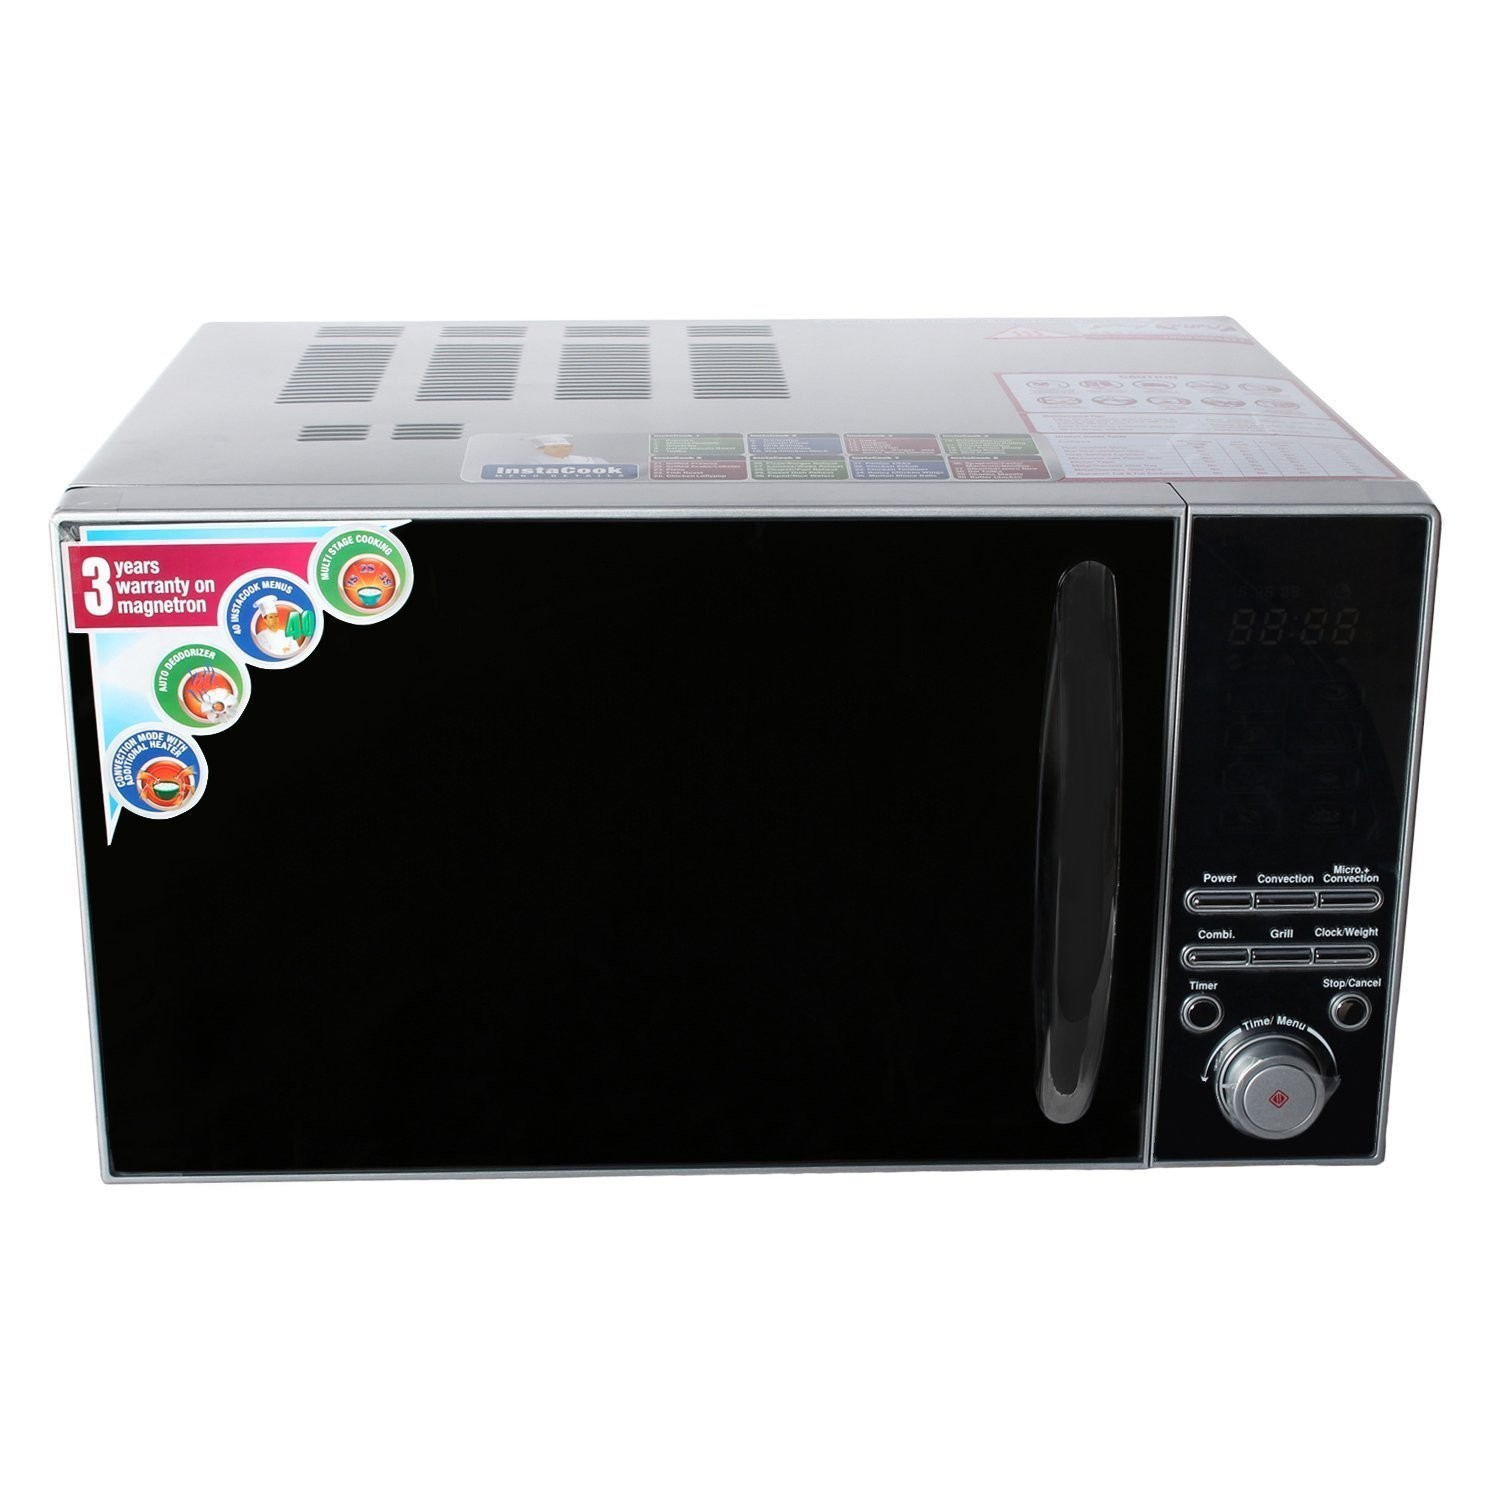 21 liters microwave oven from Samsung